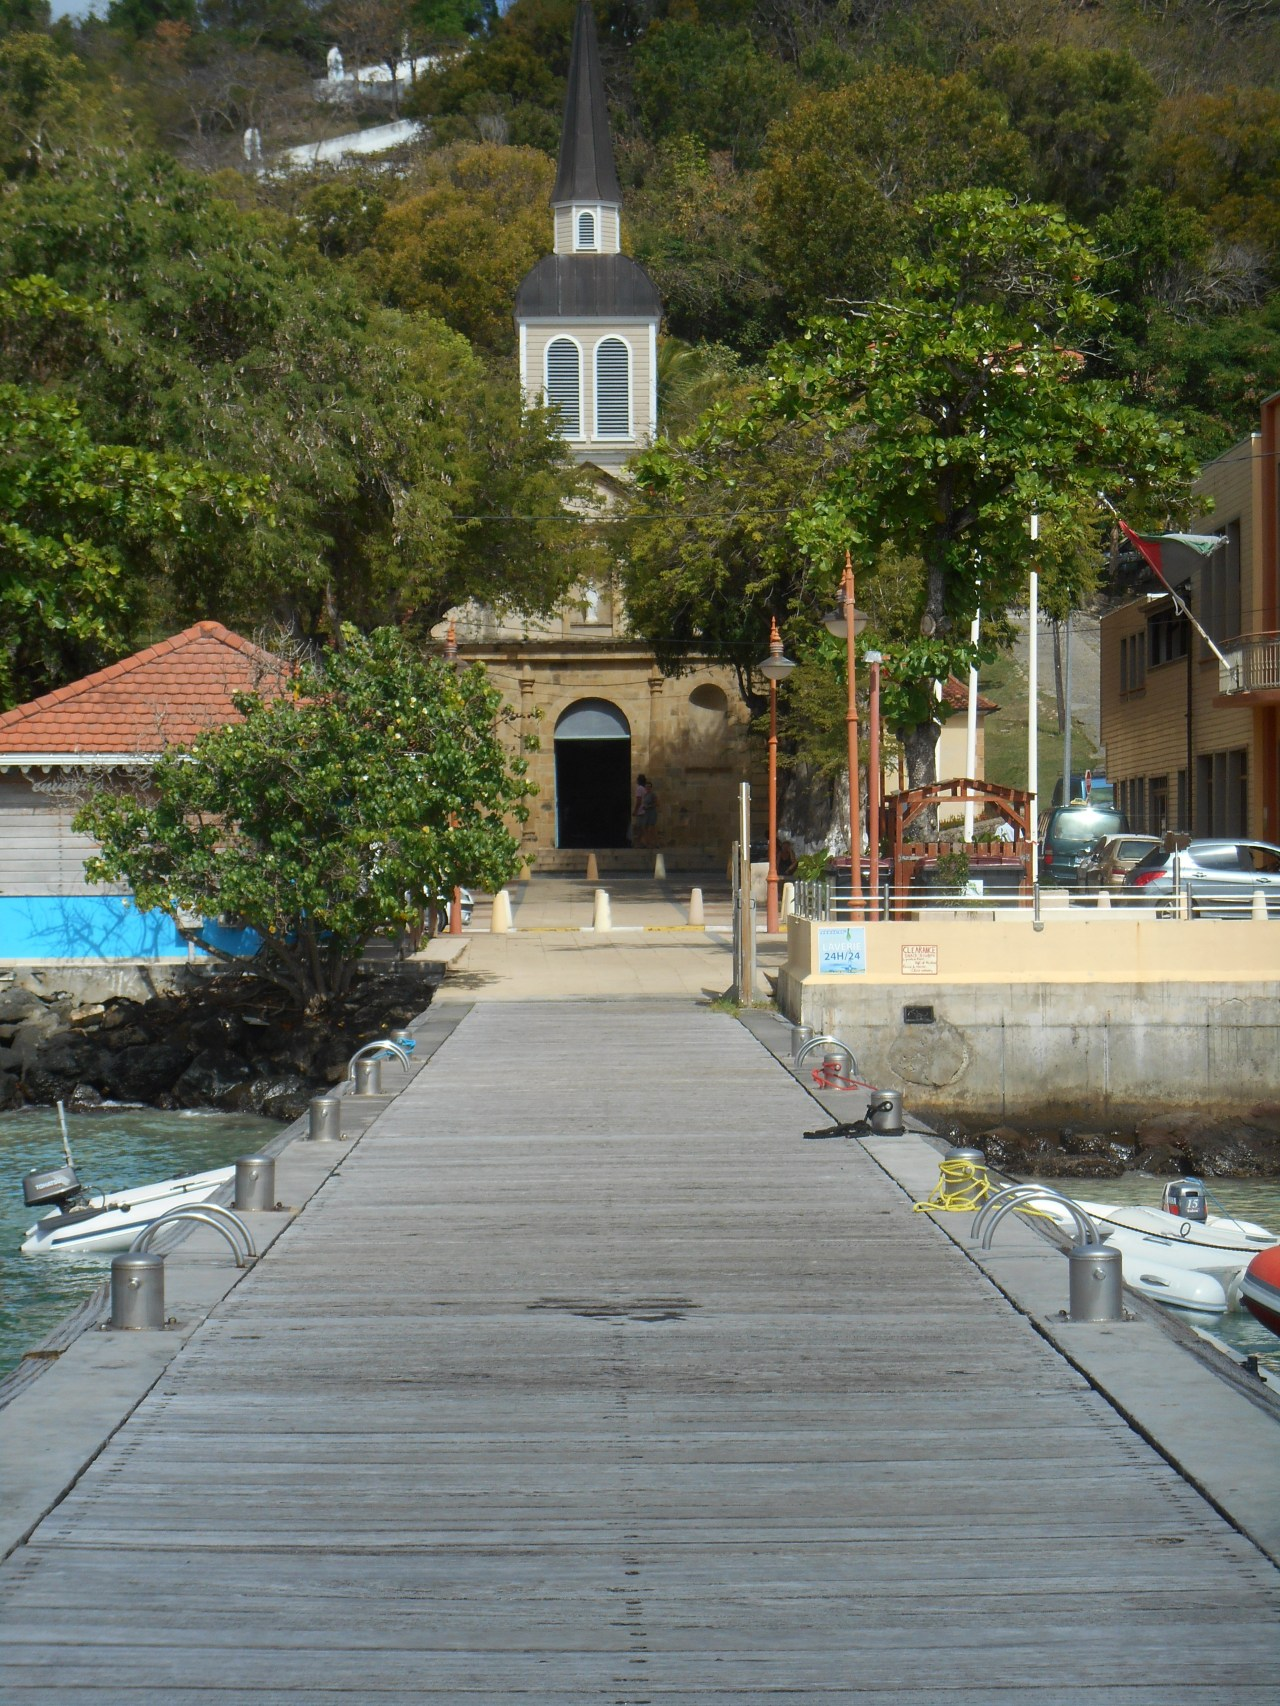 sainte-anne-martinique.jpg